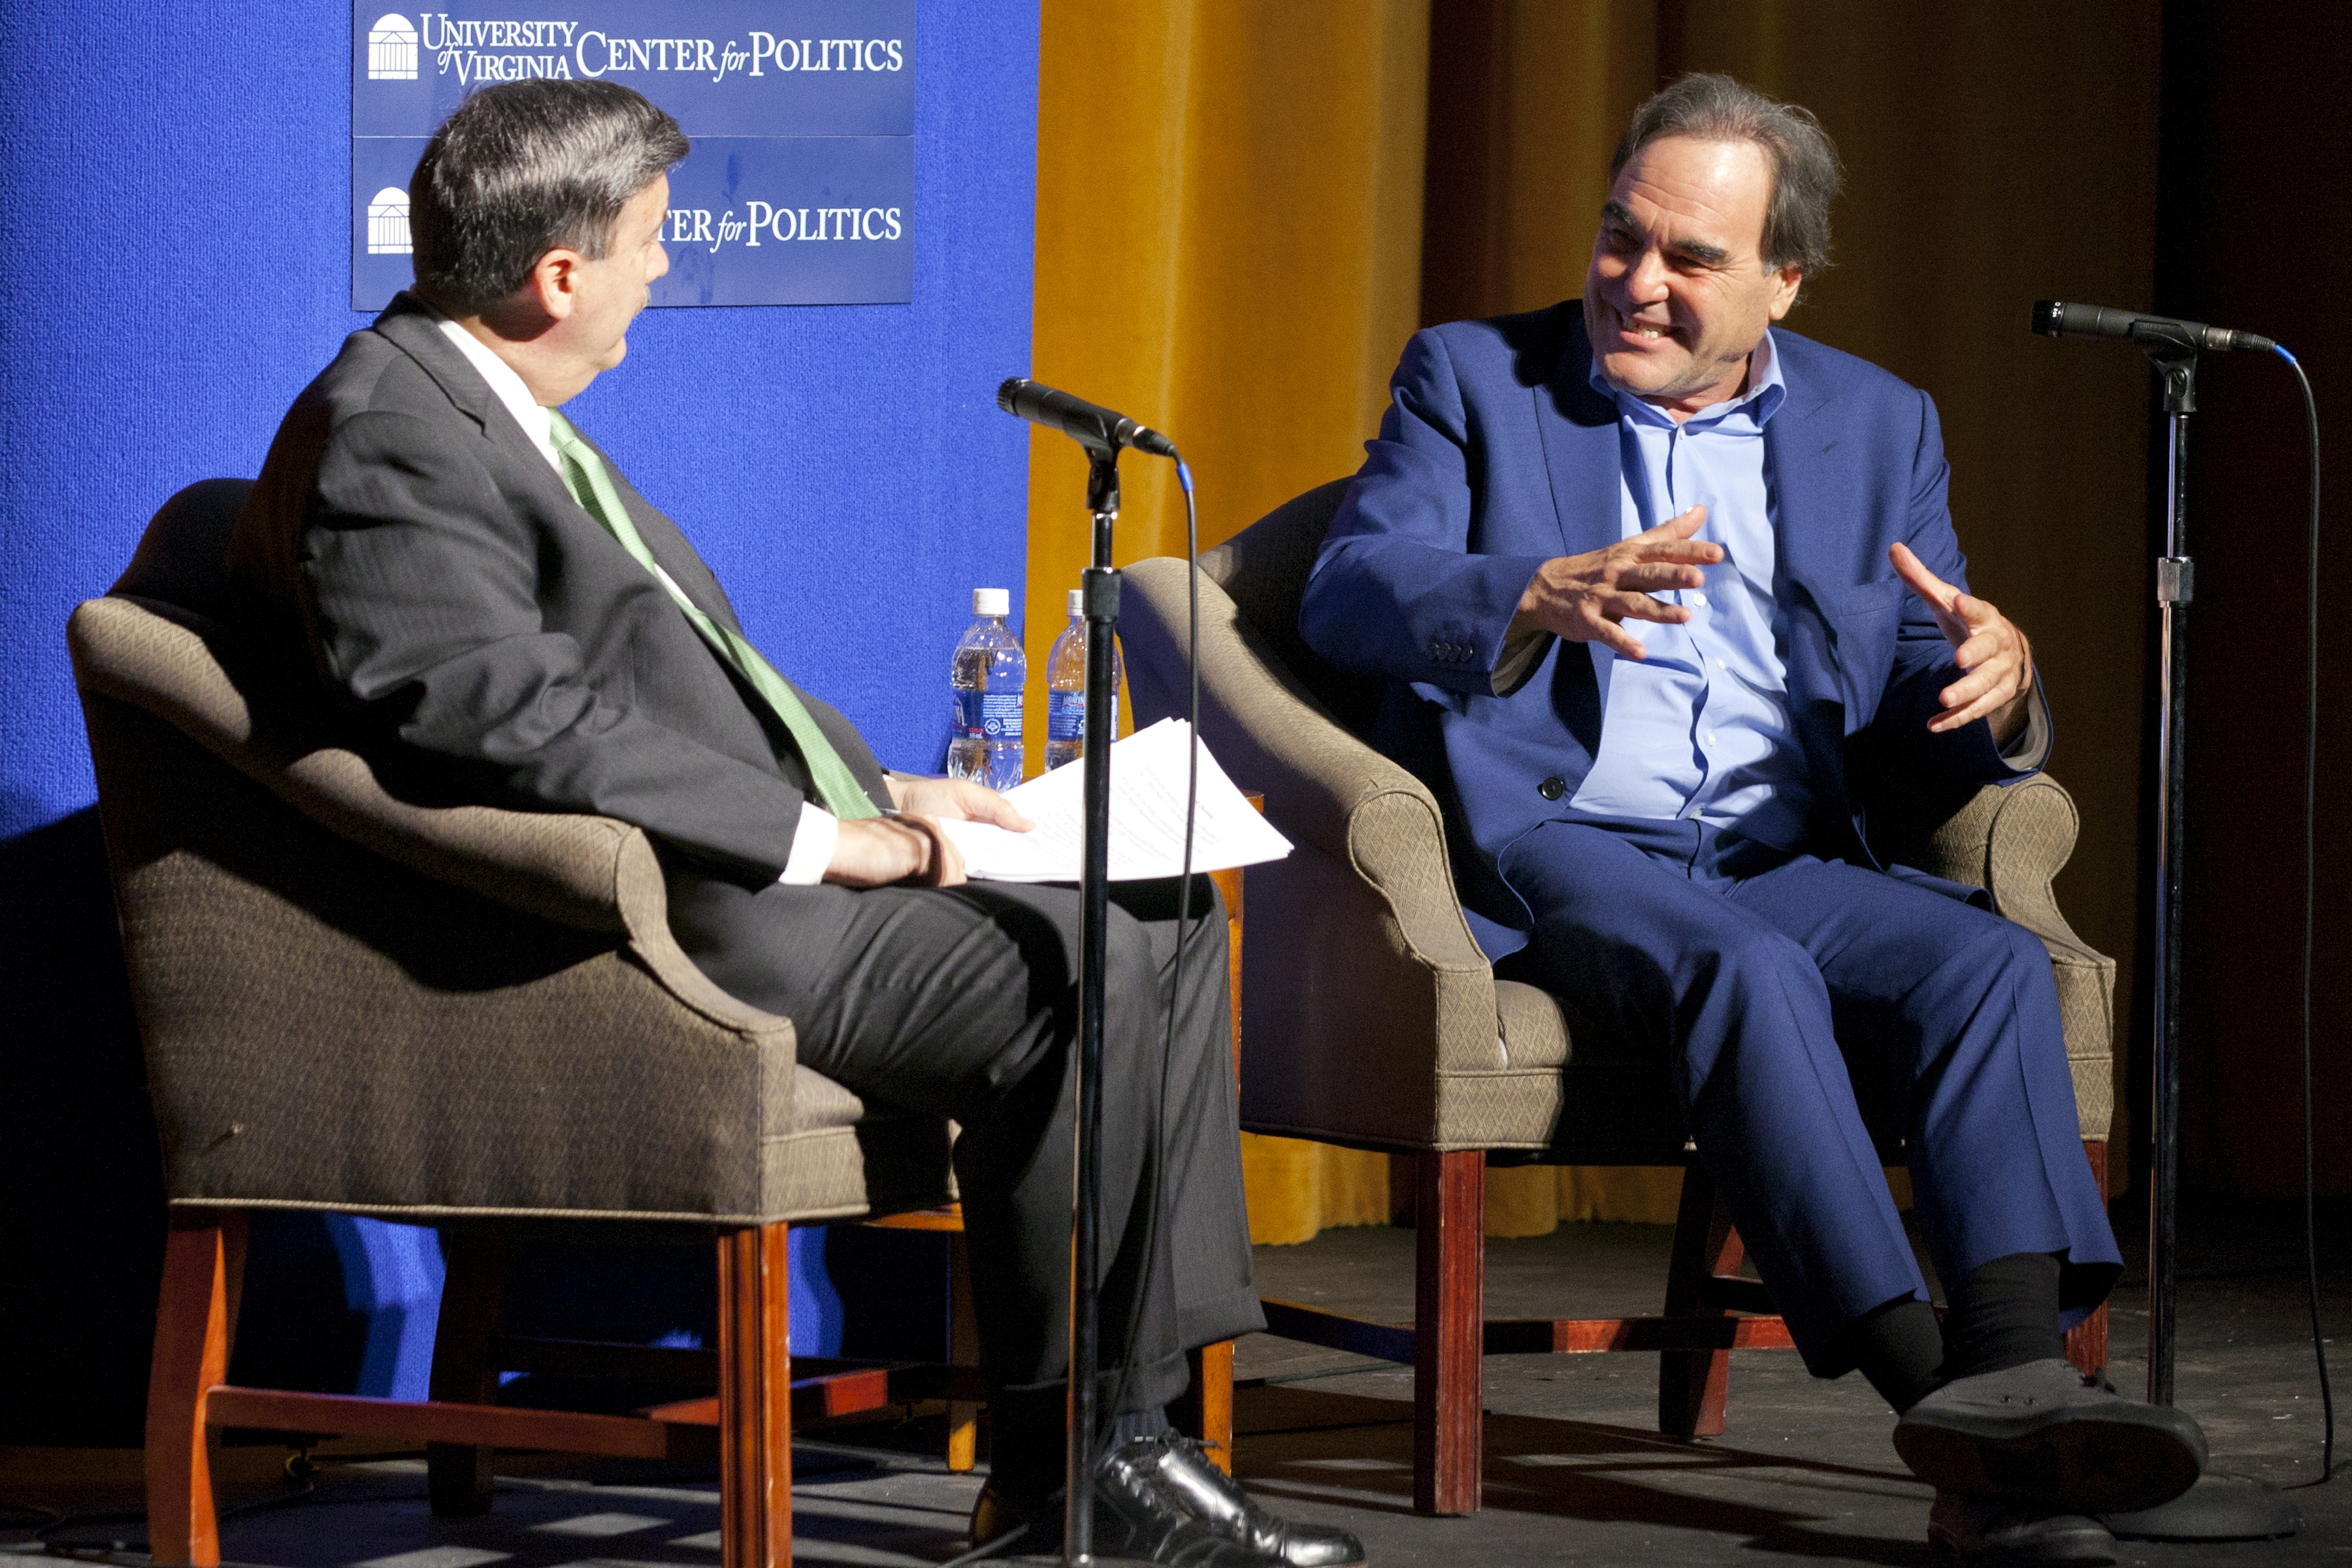 The Virginia Film Festival, running Nov. 5-8, features many UVA faculty members. Here, Center for Politics Director Larry Sabato interviews director Oliver Stone in 2011.